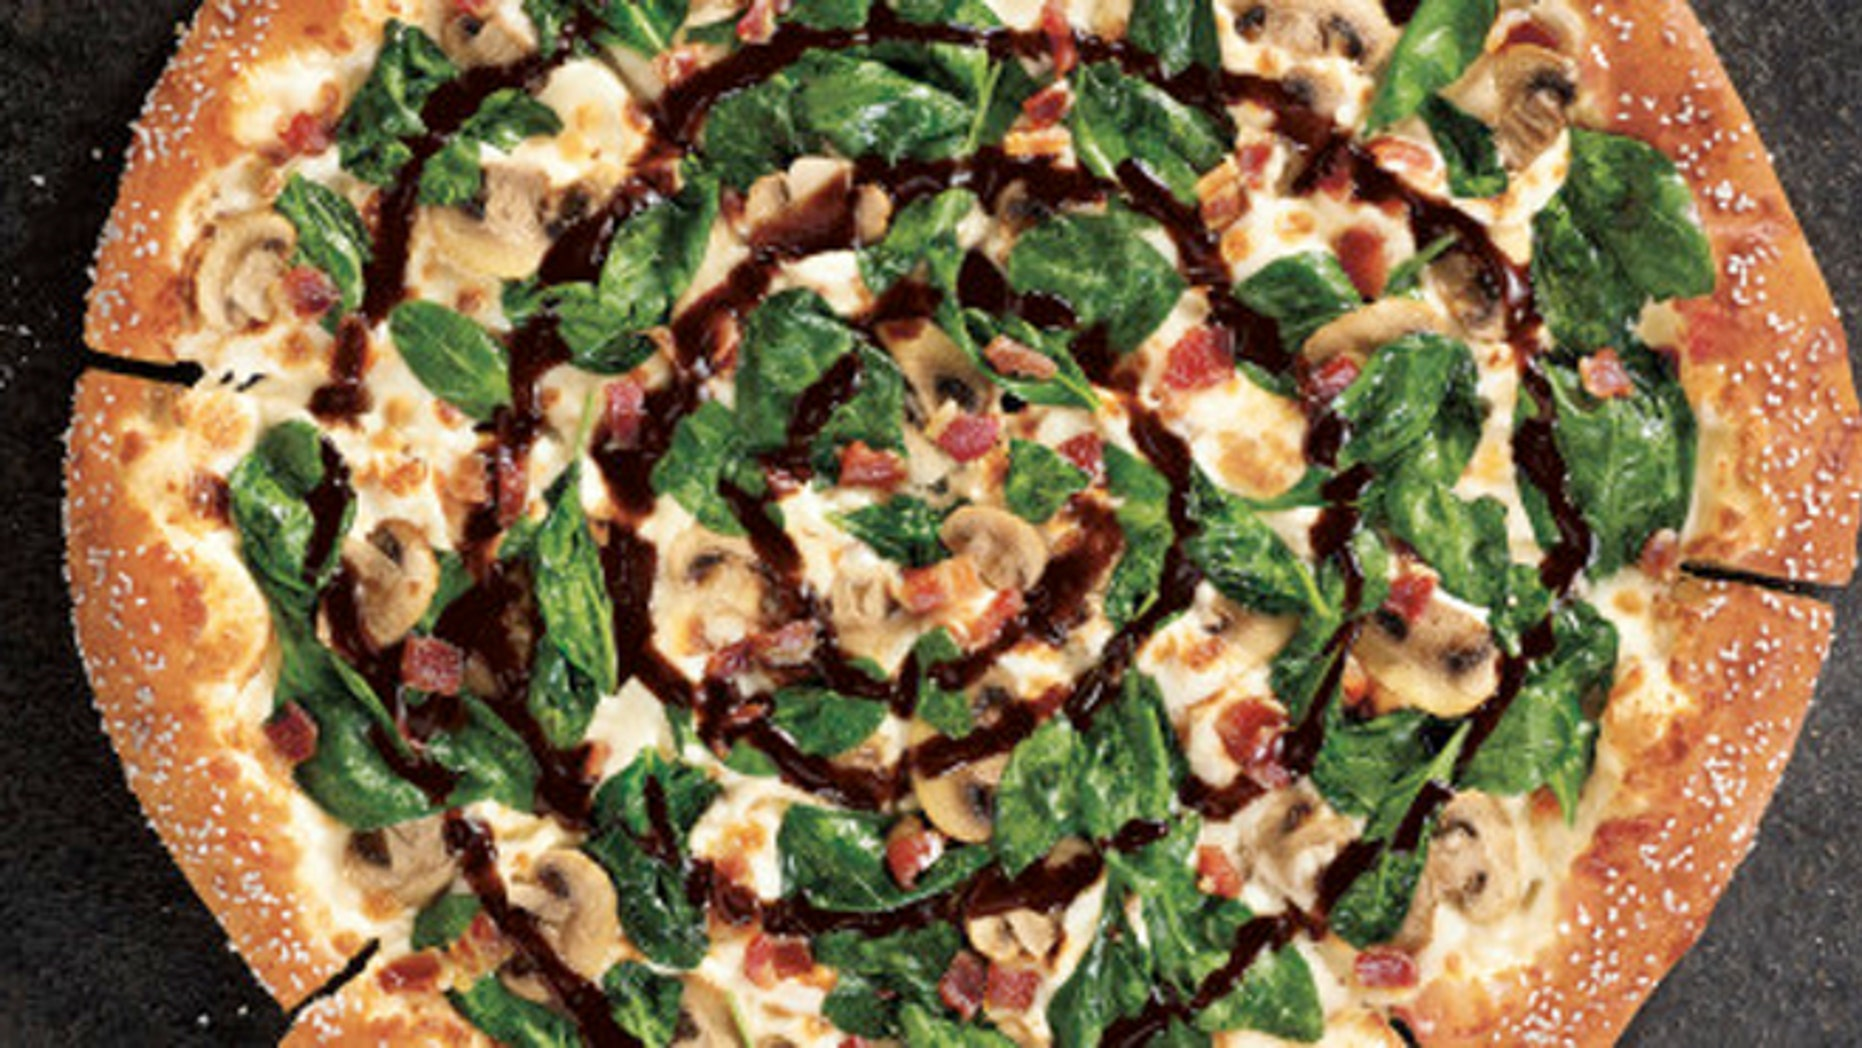 Pizza Hut has officially jumped on the customized ordering trend.